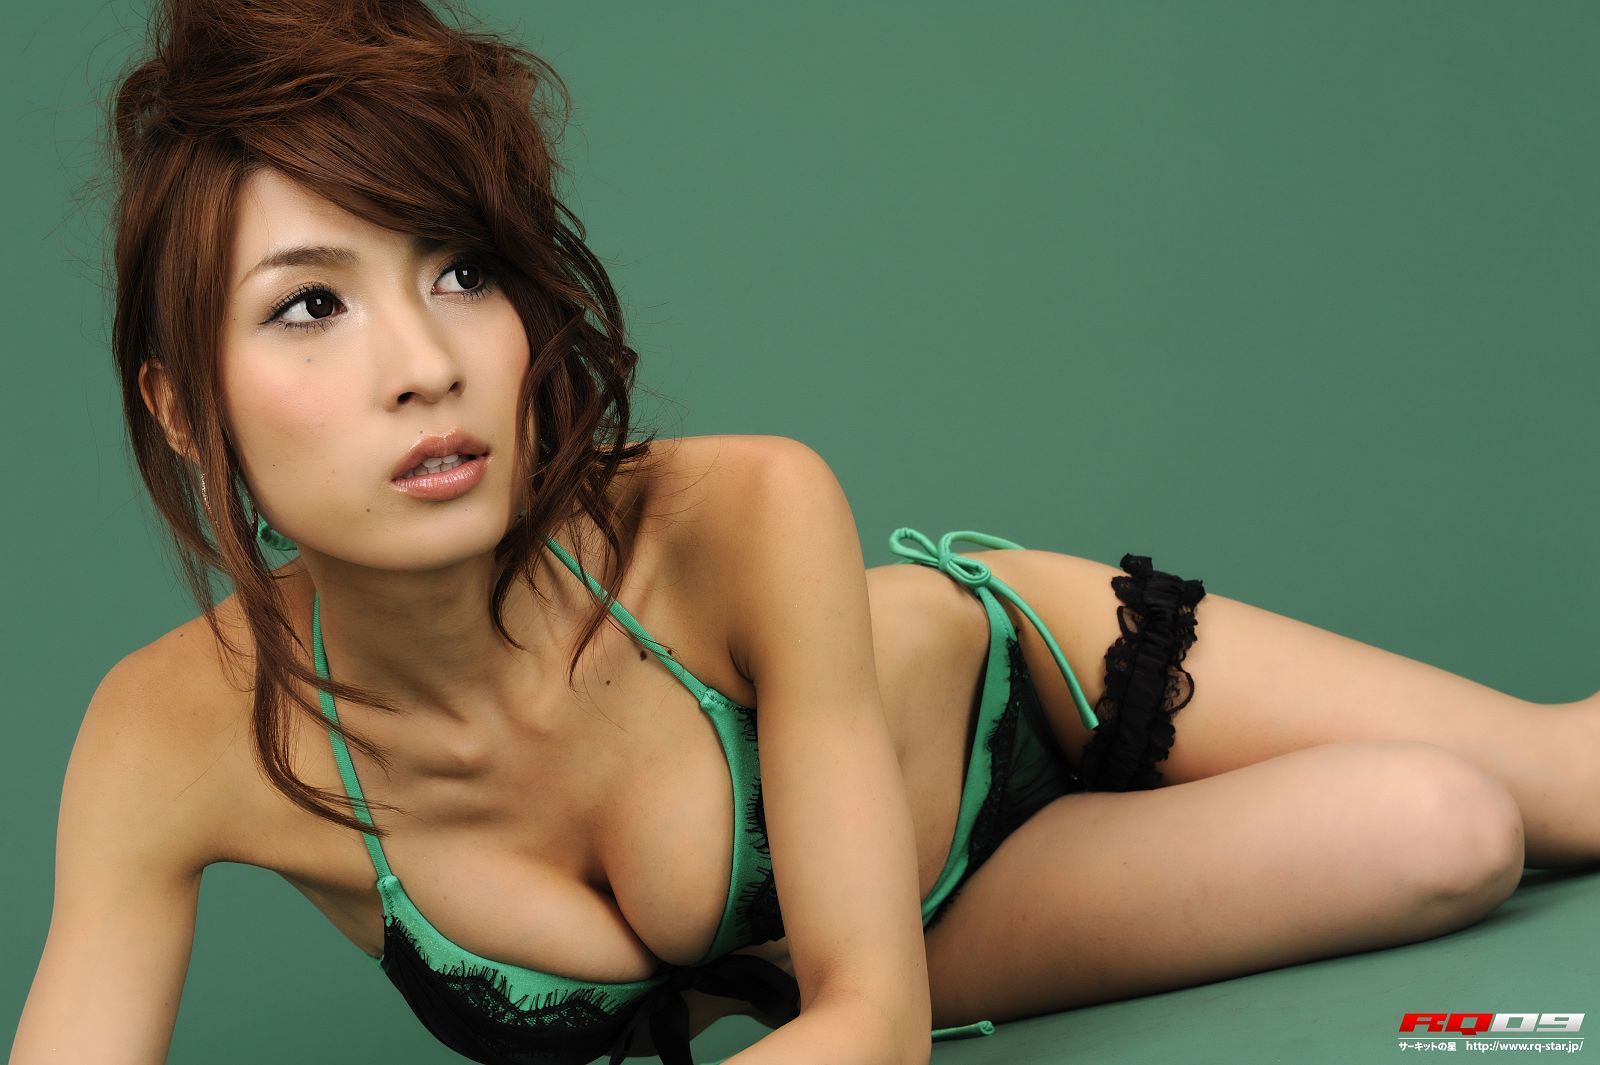 [RQ STAR美女] NO.00147 Chisaki Takahashi 高橋千咲姫 Swim Suits Green[121P] RQ STAR 第3张